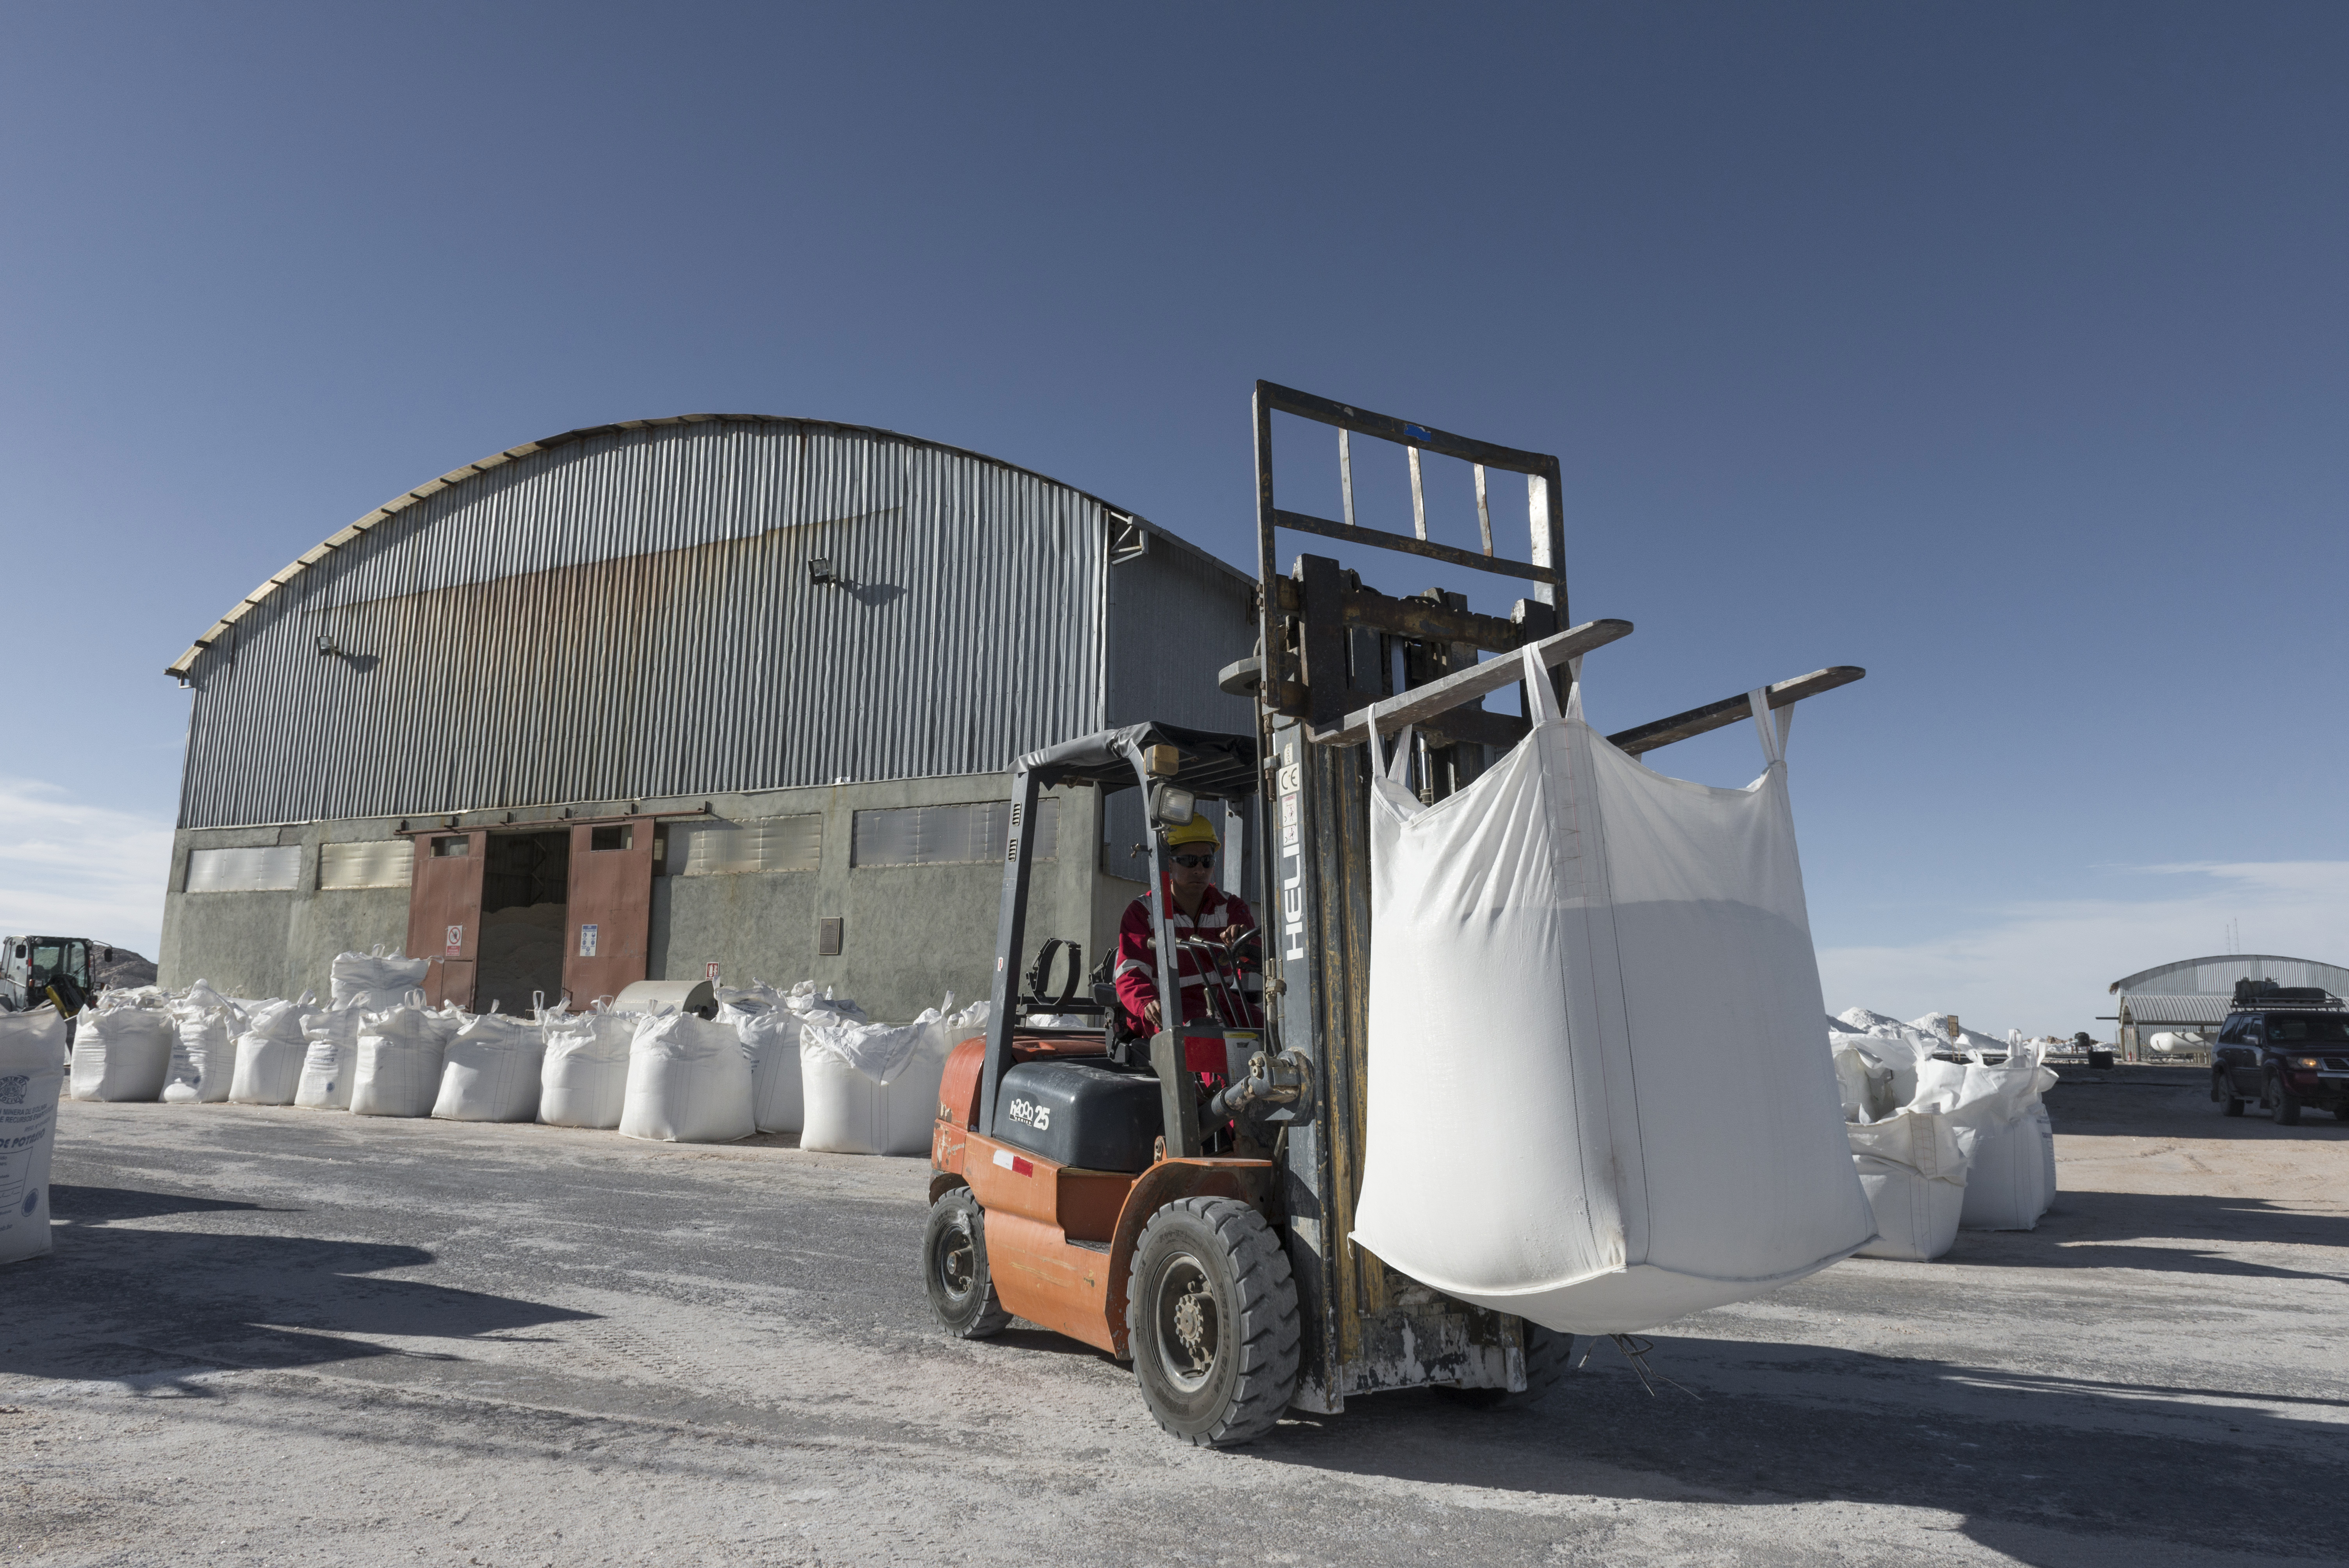 A worker moves bags of potassium chloride near the Potassium KCL Pilot facility inside the Salar de Uyuni (Salt Flats of Uyuni) in Potosi, Bolivia, on Saturday, Dec. 10, 2016. Bolivia has the largest lithium deposits of any country, which are estimated to be about half of the world's supply. Photographer: Marcelo Perez del Carpio/Bloomberg via Getty Images